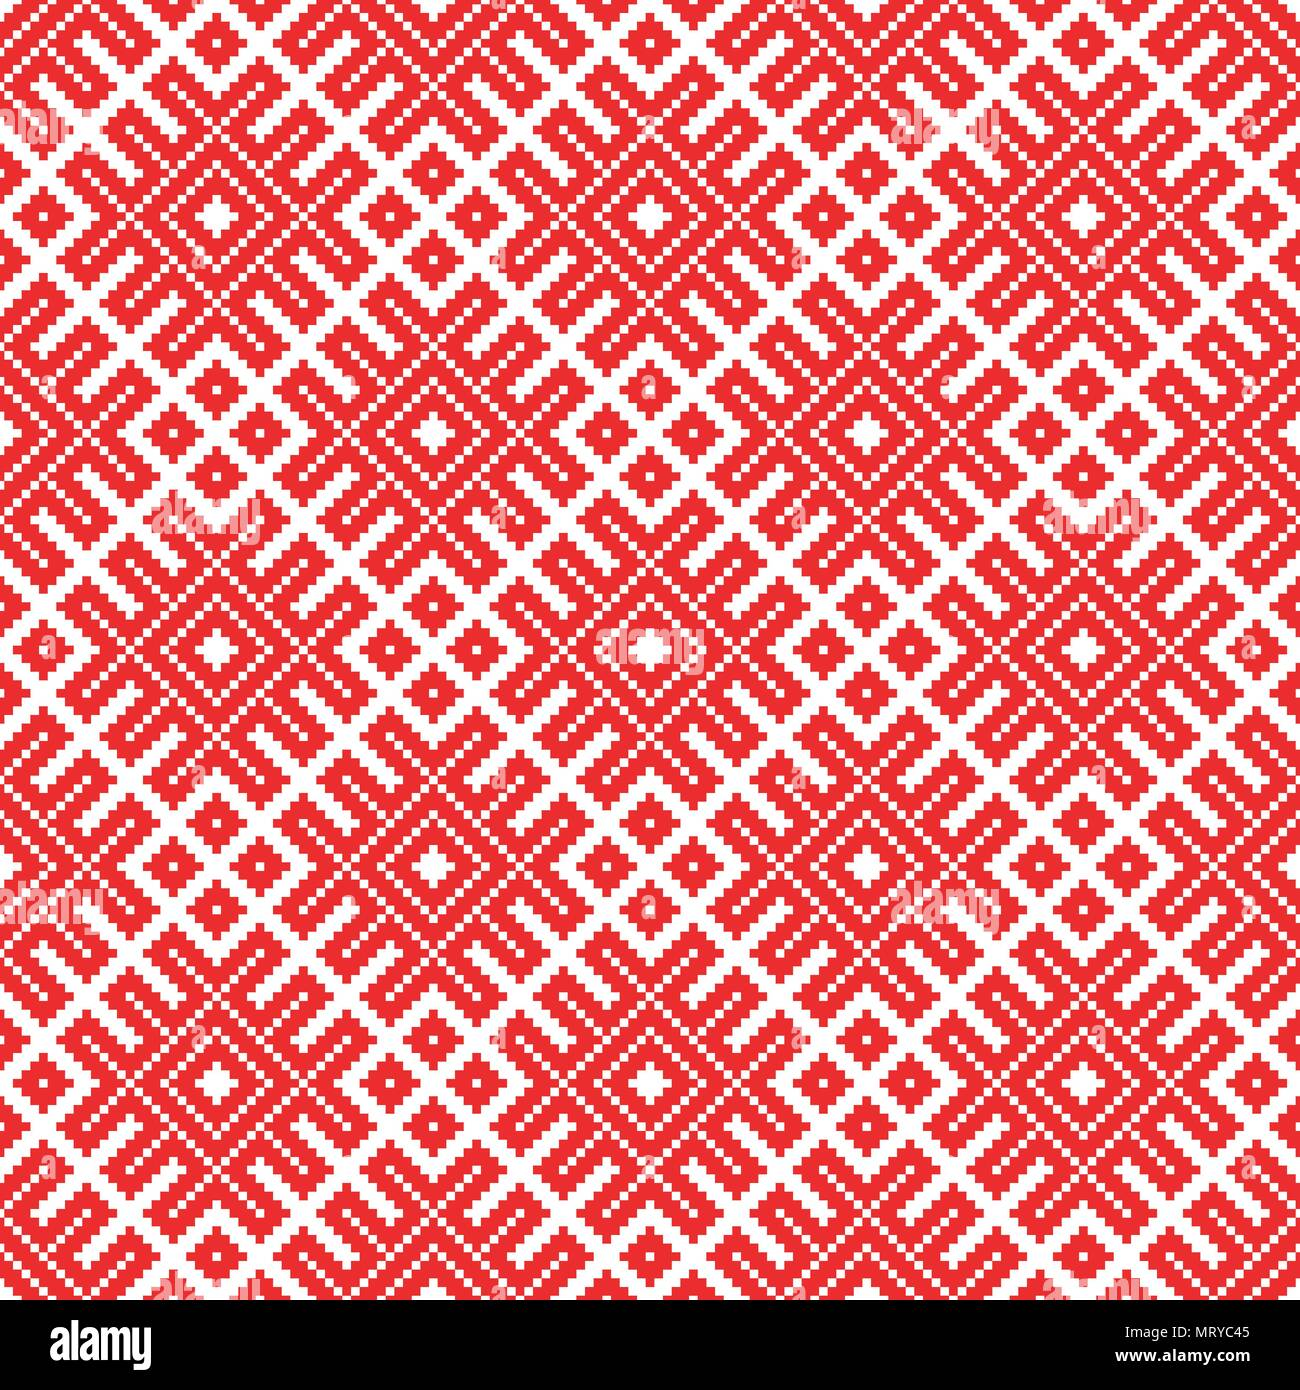 Seamless traditional Russian and slavic ornament made by squares . - Stock Image